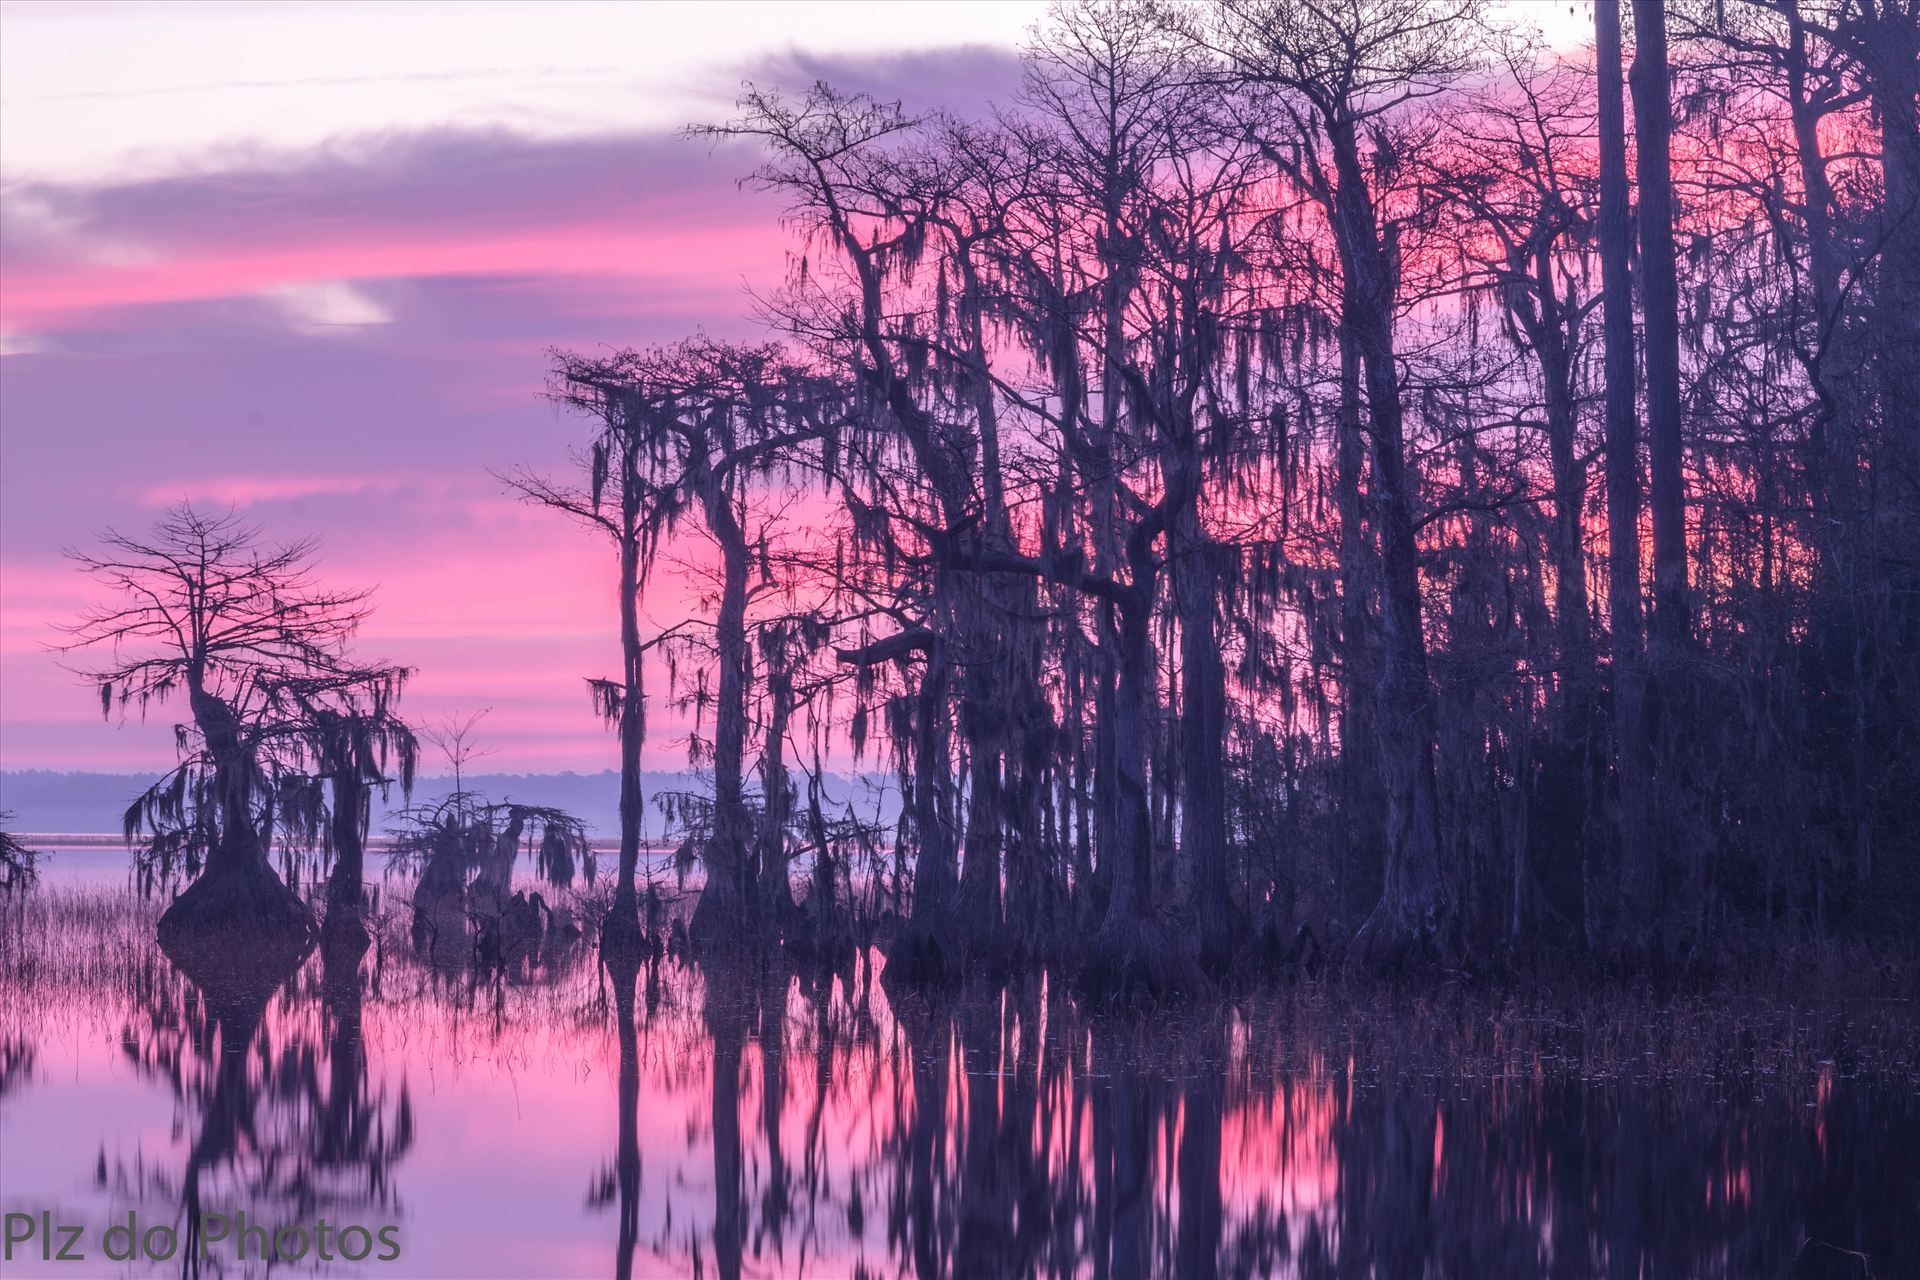 Morning Has Broken - Sunrise over the Lake Waccamaw at the dam. by Patricia Zyzyk